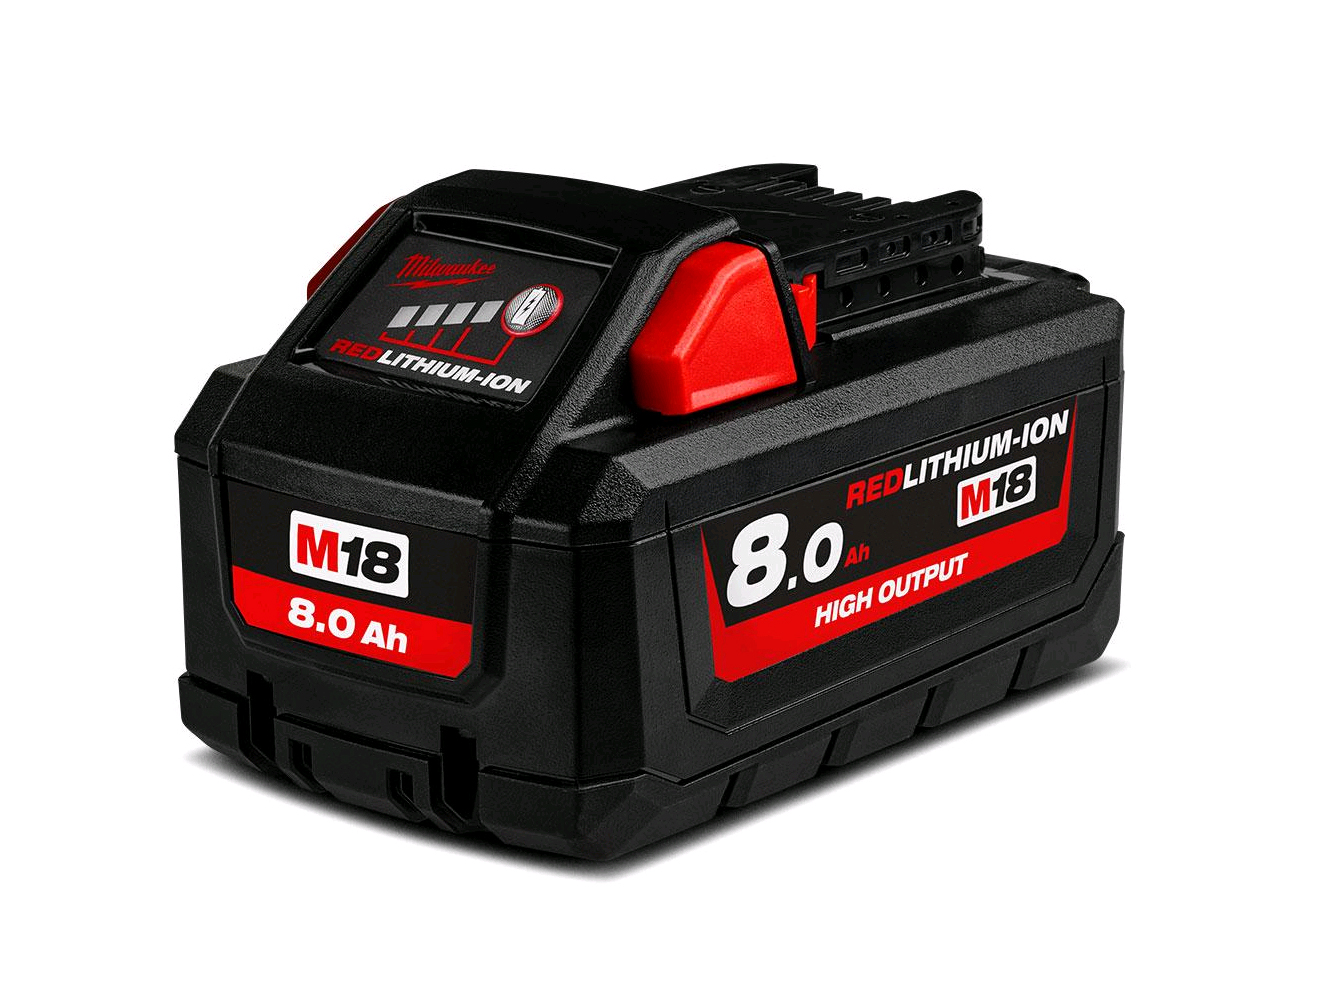 Milwaukee M18HB8 18V 8.0ah High Output Lithium-ion Battery